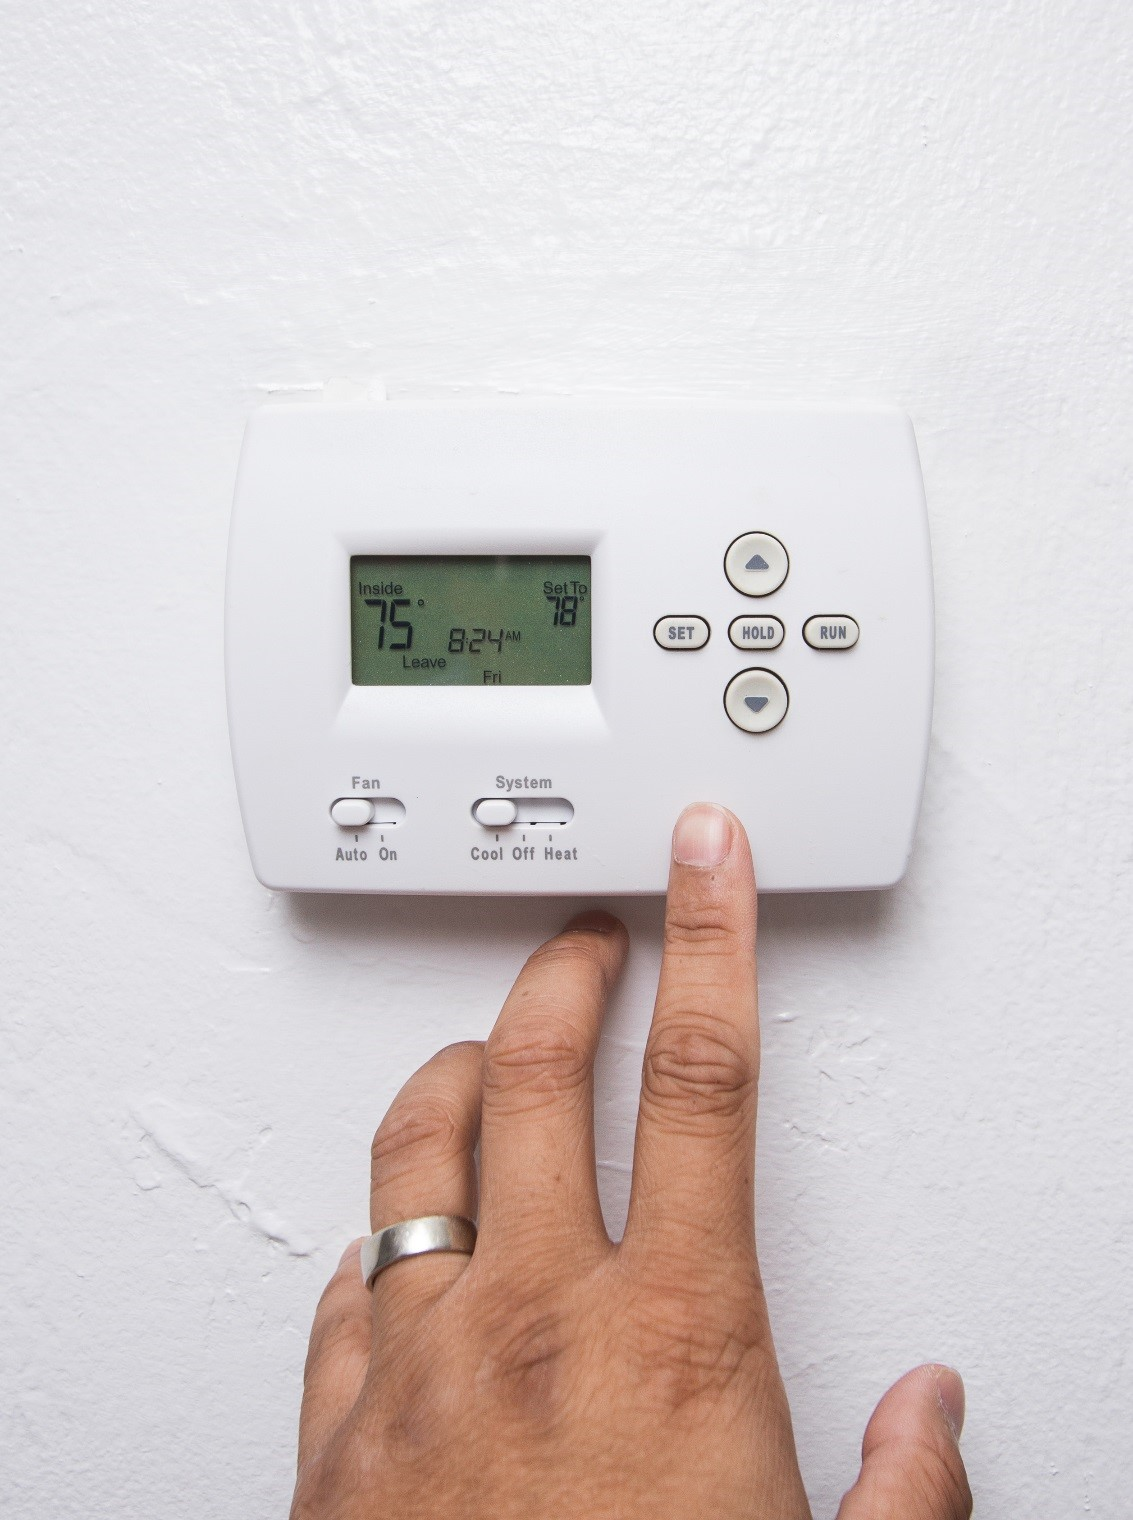 Control humidity with central air conditioning, set thermostat 80-85°F.